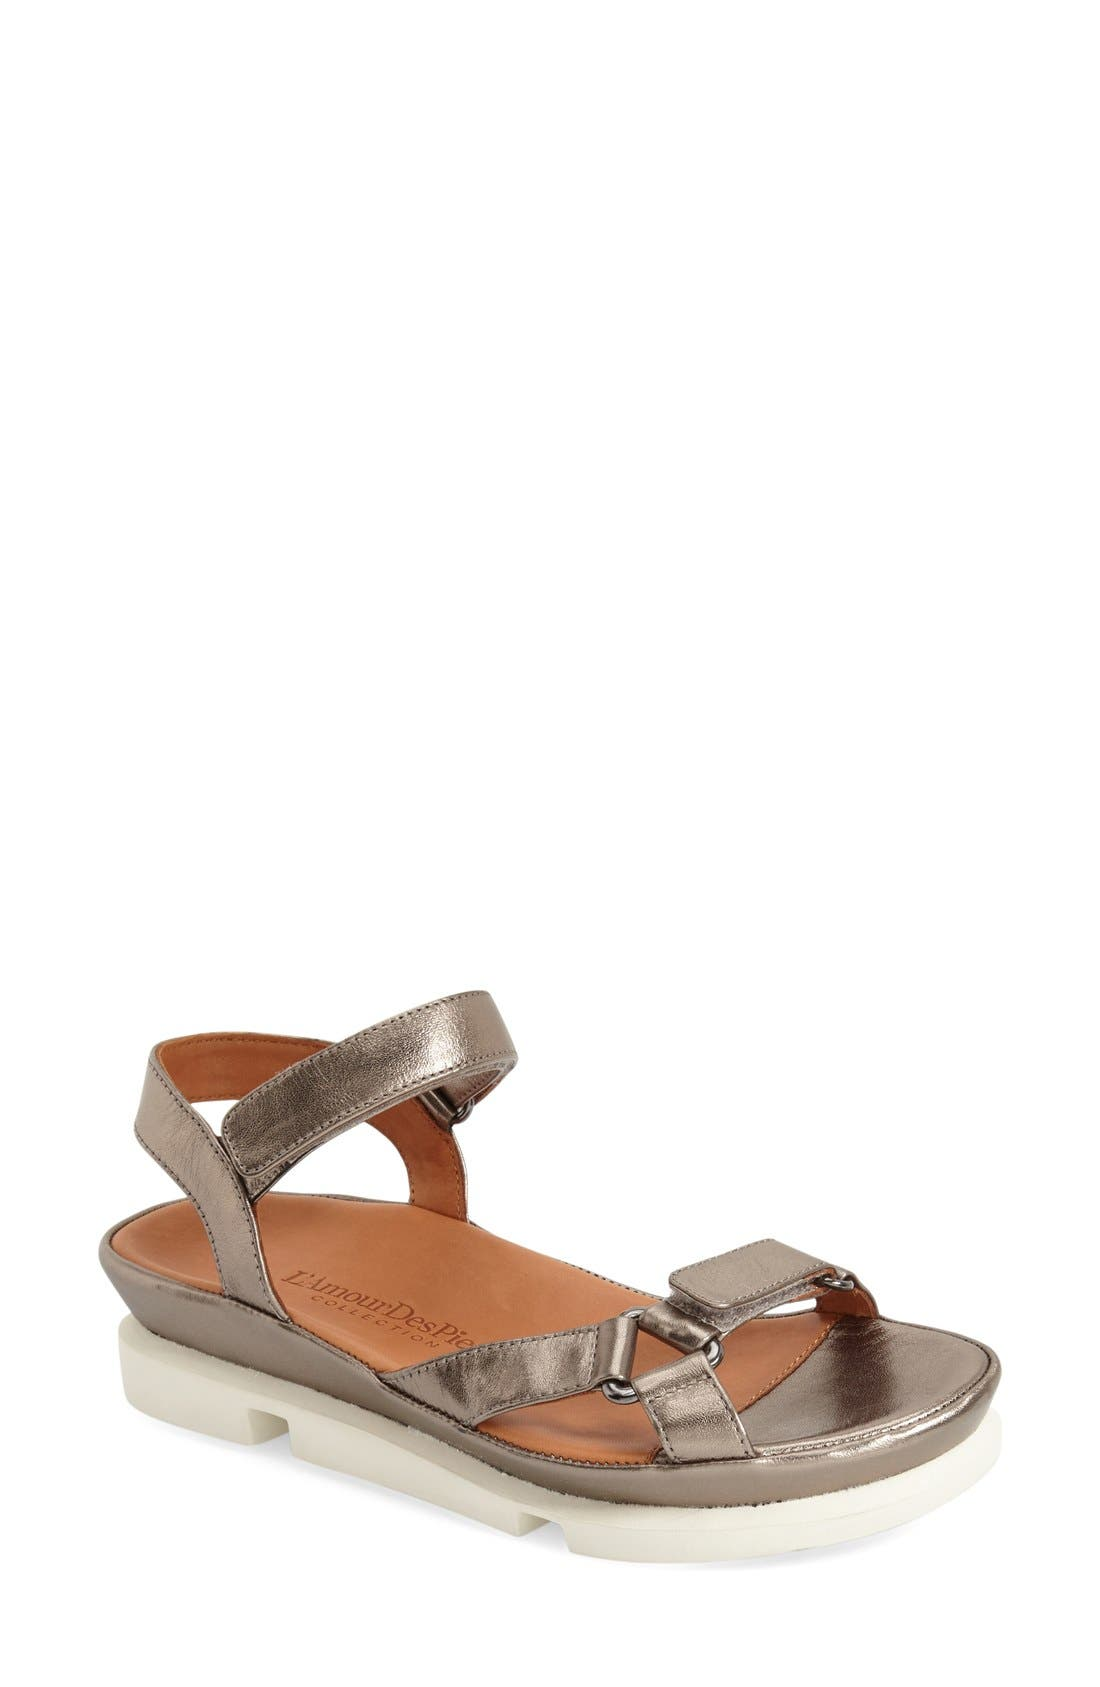 'Vasey' Sandal,                         Main,                         color, 060